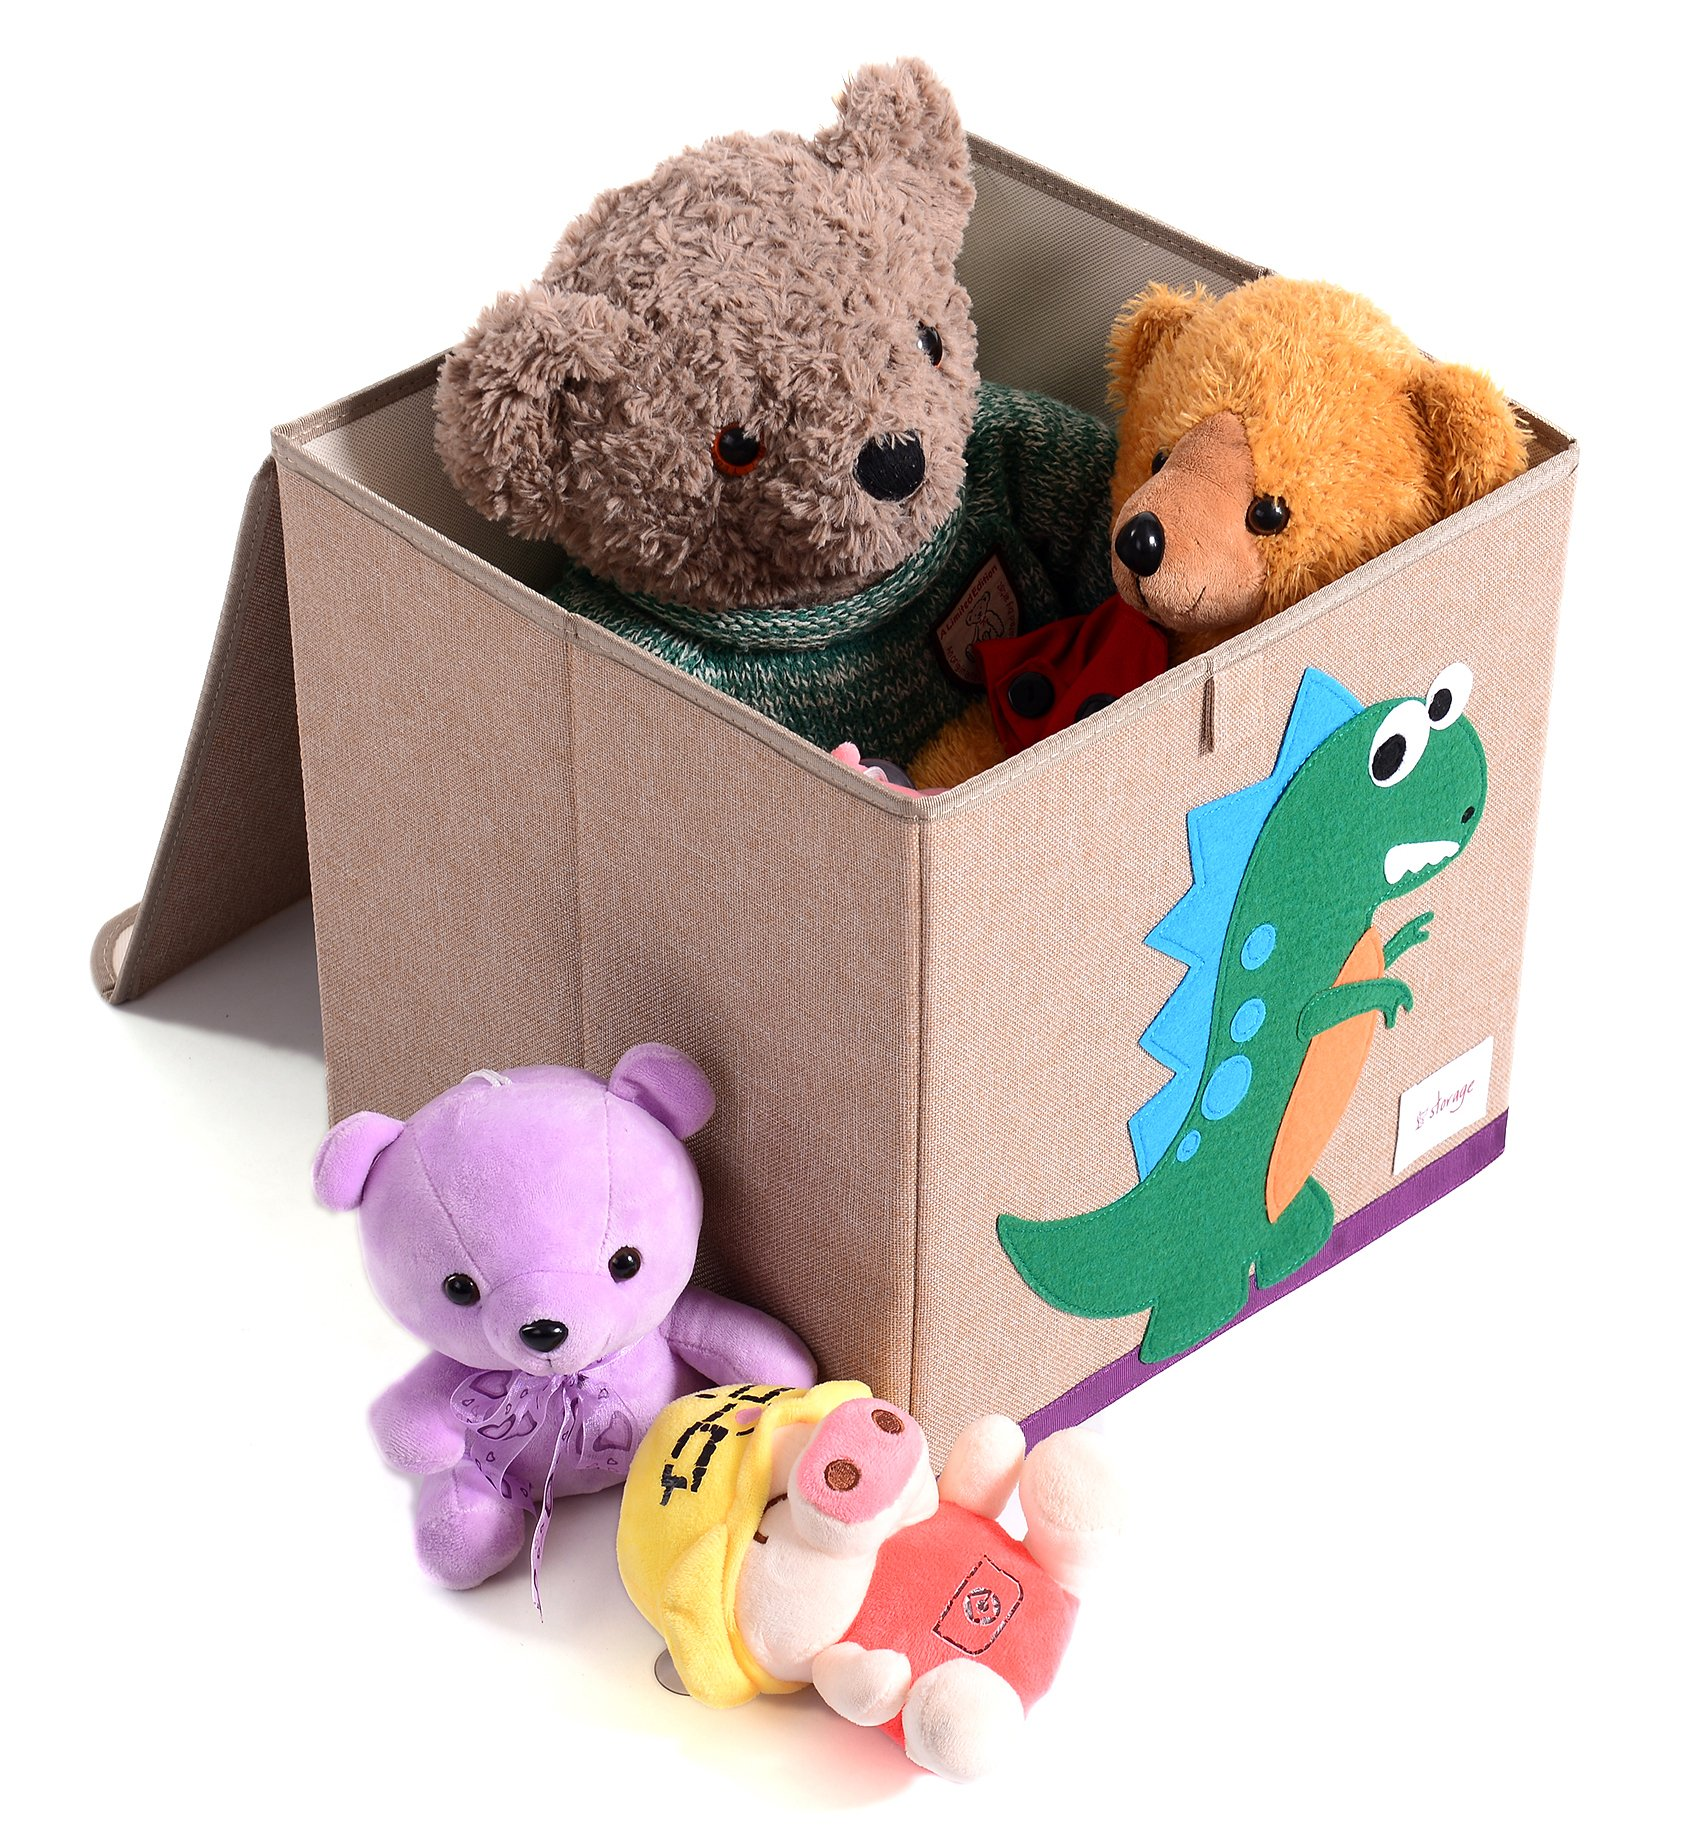 HIYAGON 13''x13''x13''Storage Box/Bin/Cube/Basket/Chest/Organizers with Lids for Bedroom, Nursery, Playroom, Toys, Clothing, Blankets, Books, More(Hedgehog) by HIYAGON (Image #5)